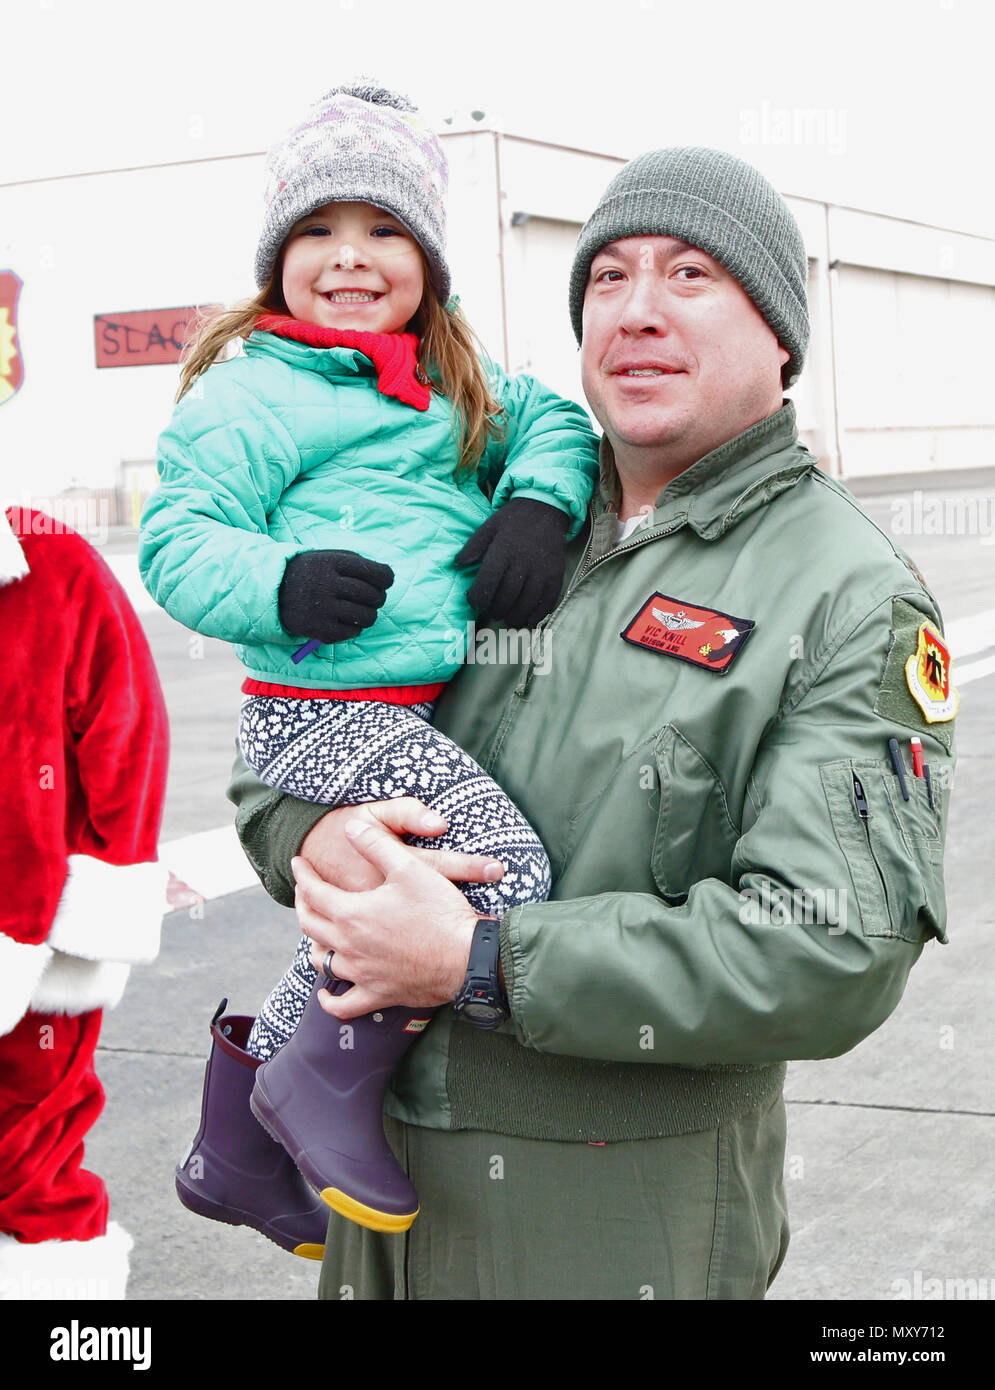 U.S. Air Force Major Vic Knill, and his daughter smile after seeing Santa Clause arrive in an F-15 Eagle during the 173rd Fighter Wing's annual Children's Christmas party at Kingsley Field in Klamath Falls, Ore. Dec. 4, 2016. Santa's arrival in the F-15 was the highlight of the event held for members of the base and their families, and featured games, face painting, hot cocoa, and pictures with Santa and Mrs. Clause.  (U.S. Air National Guard photo by Tech. Sgt. Jefferson Thompson) - Stock Image